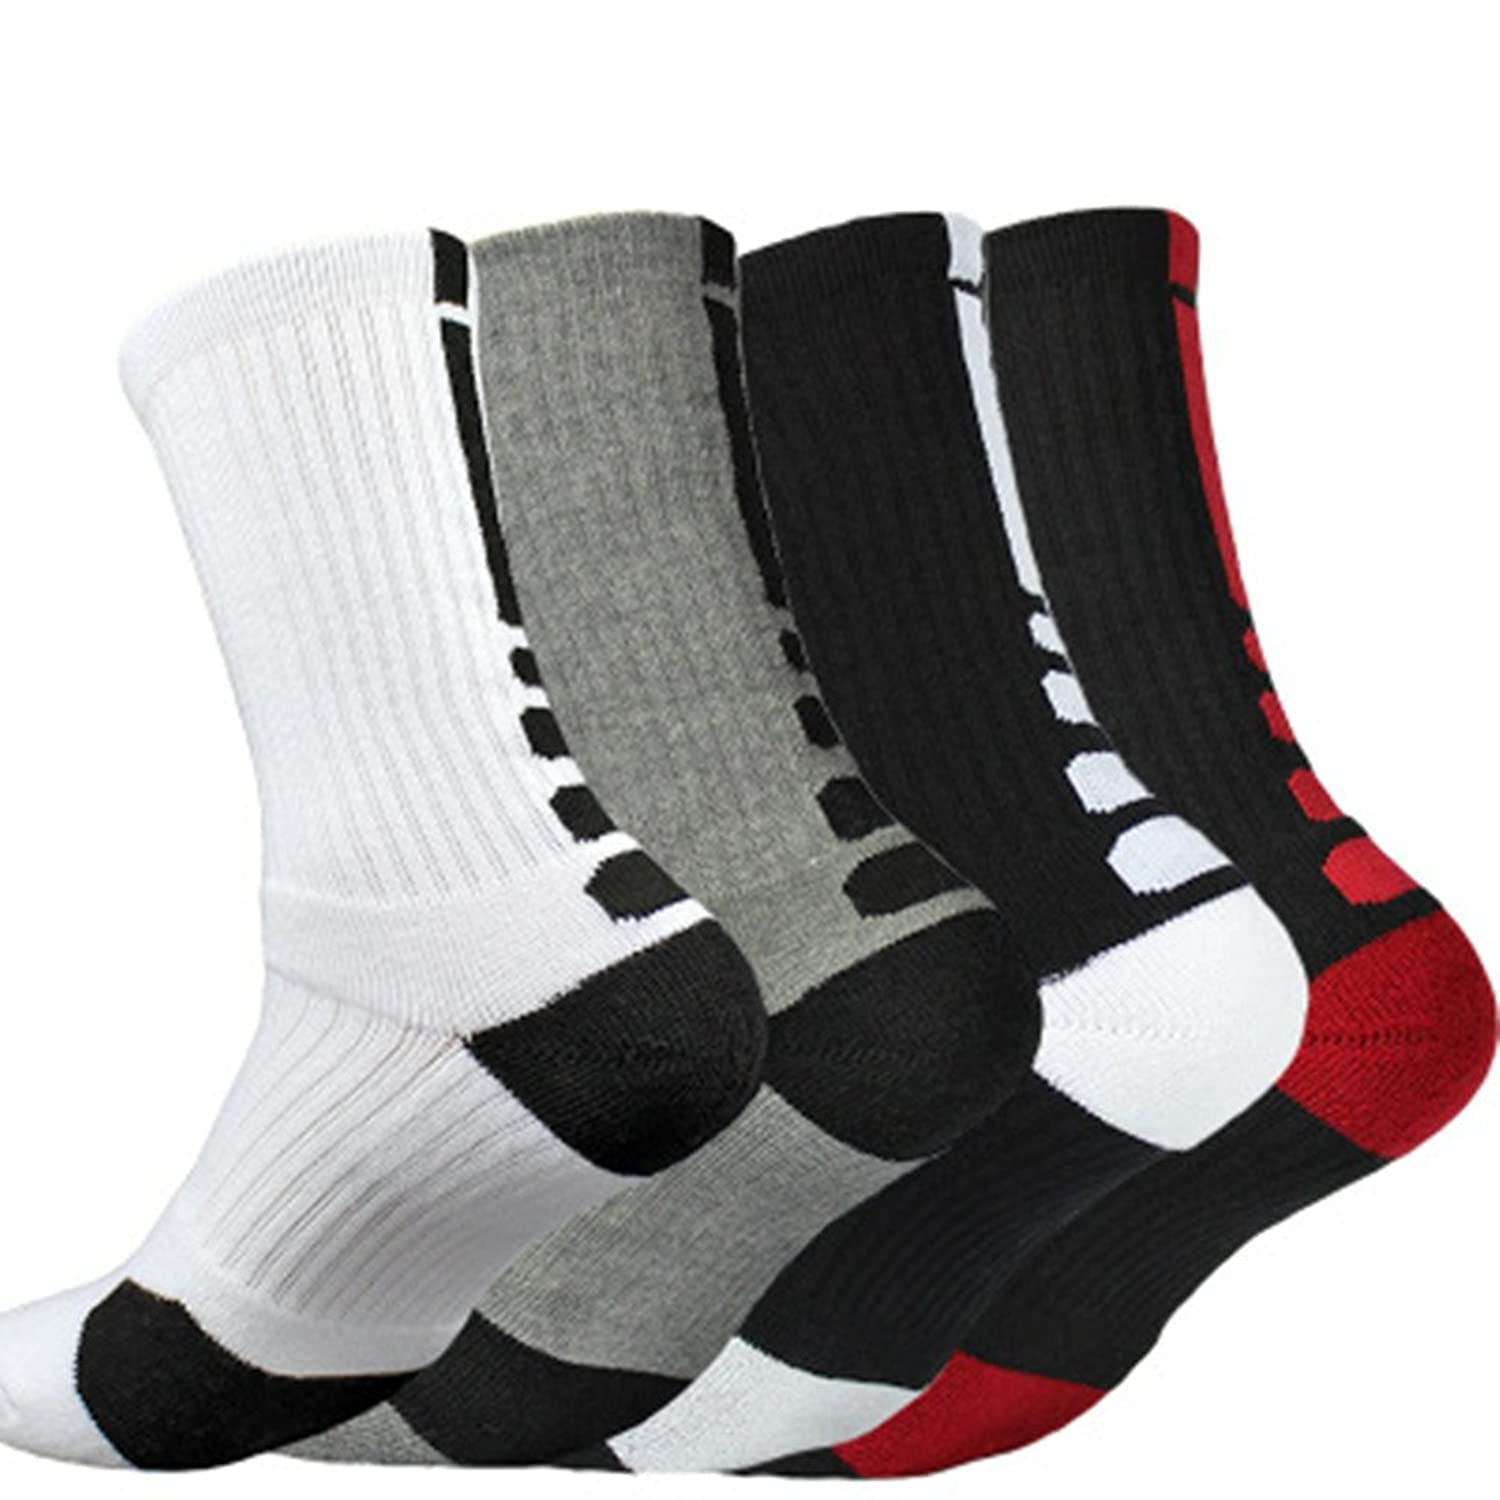 806c7c19a7 Good quality socks - fits perfectly active wear and moisture wicking,Very  good choice for everyday use , Soft and fit very well, use for football ans  work ...